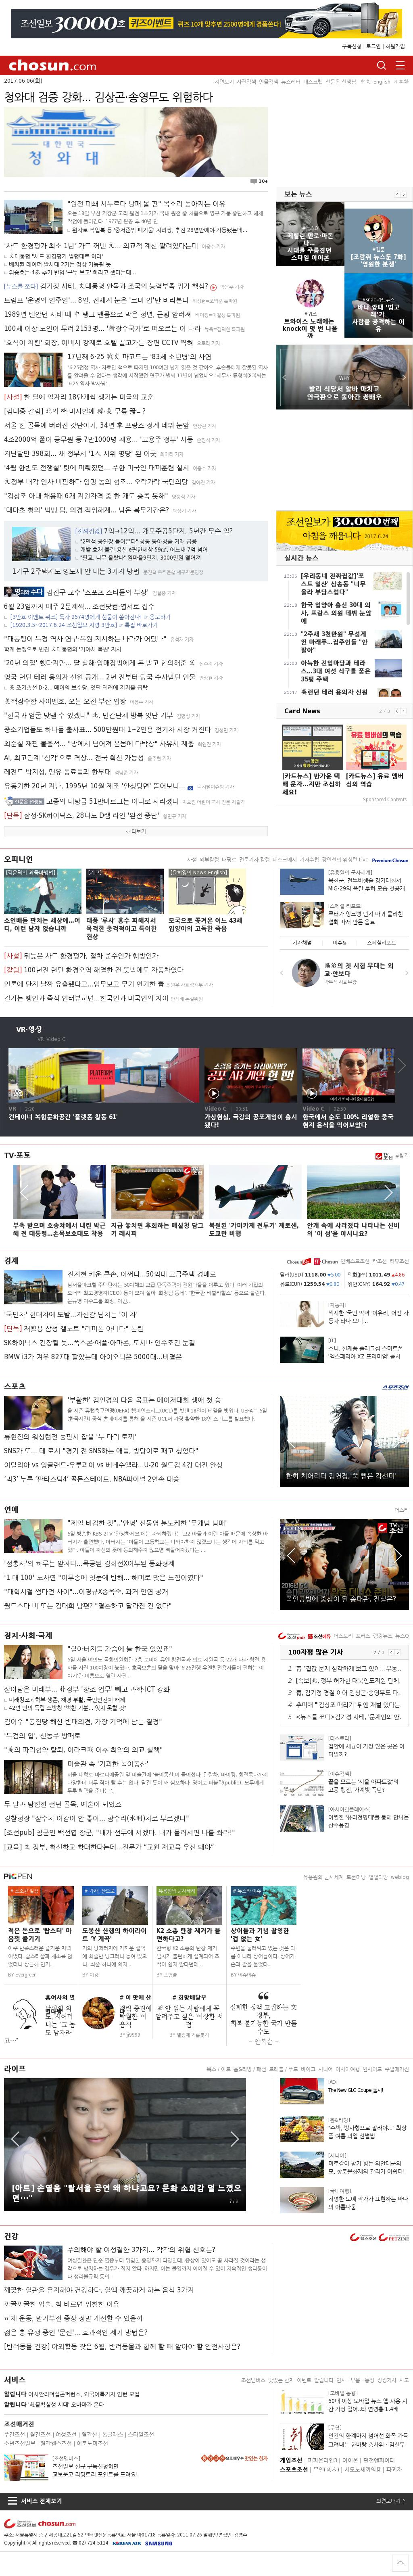 chosun.com at Monday June 5, 2017, 11:04 p.m. UTC